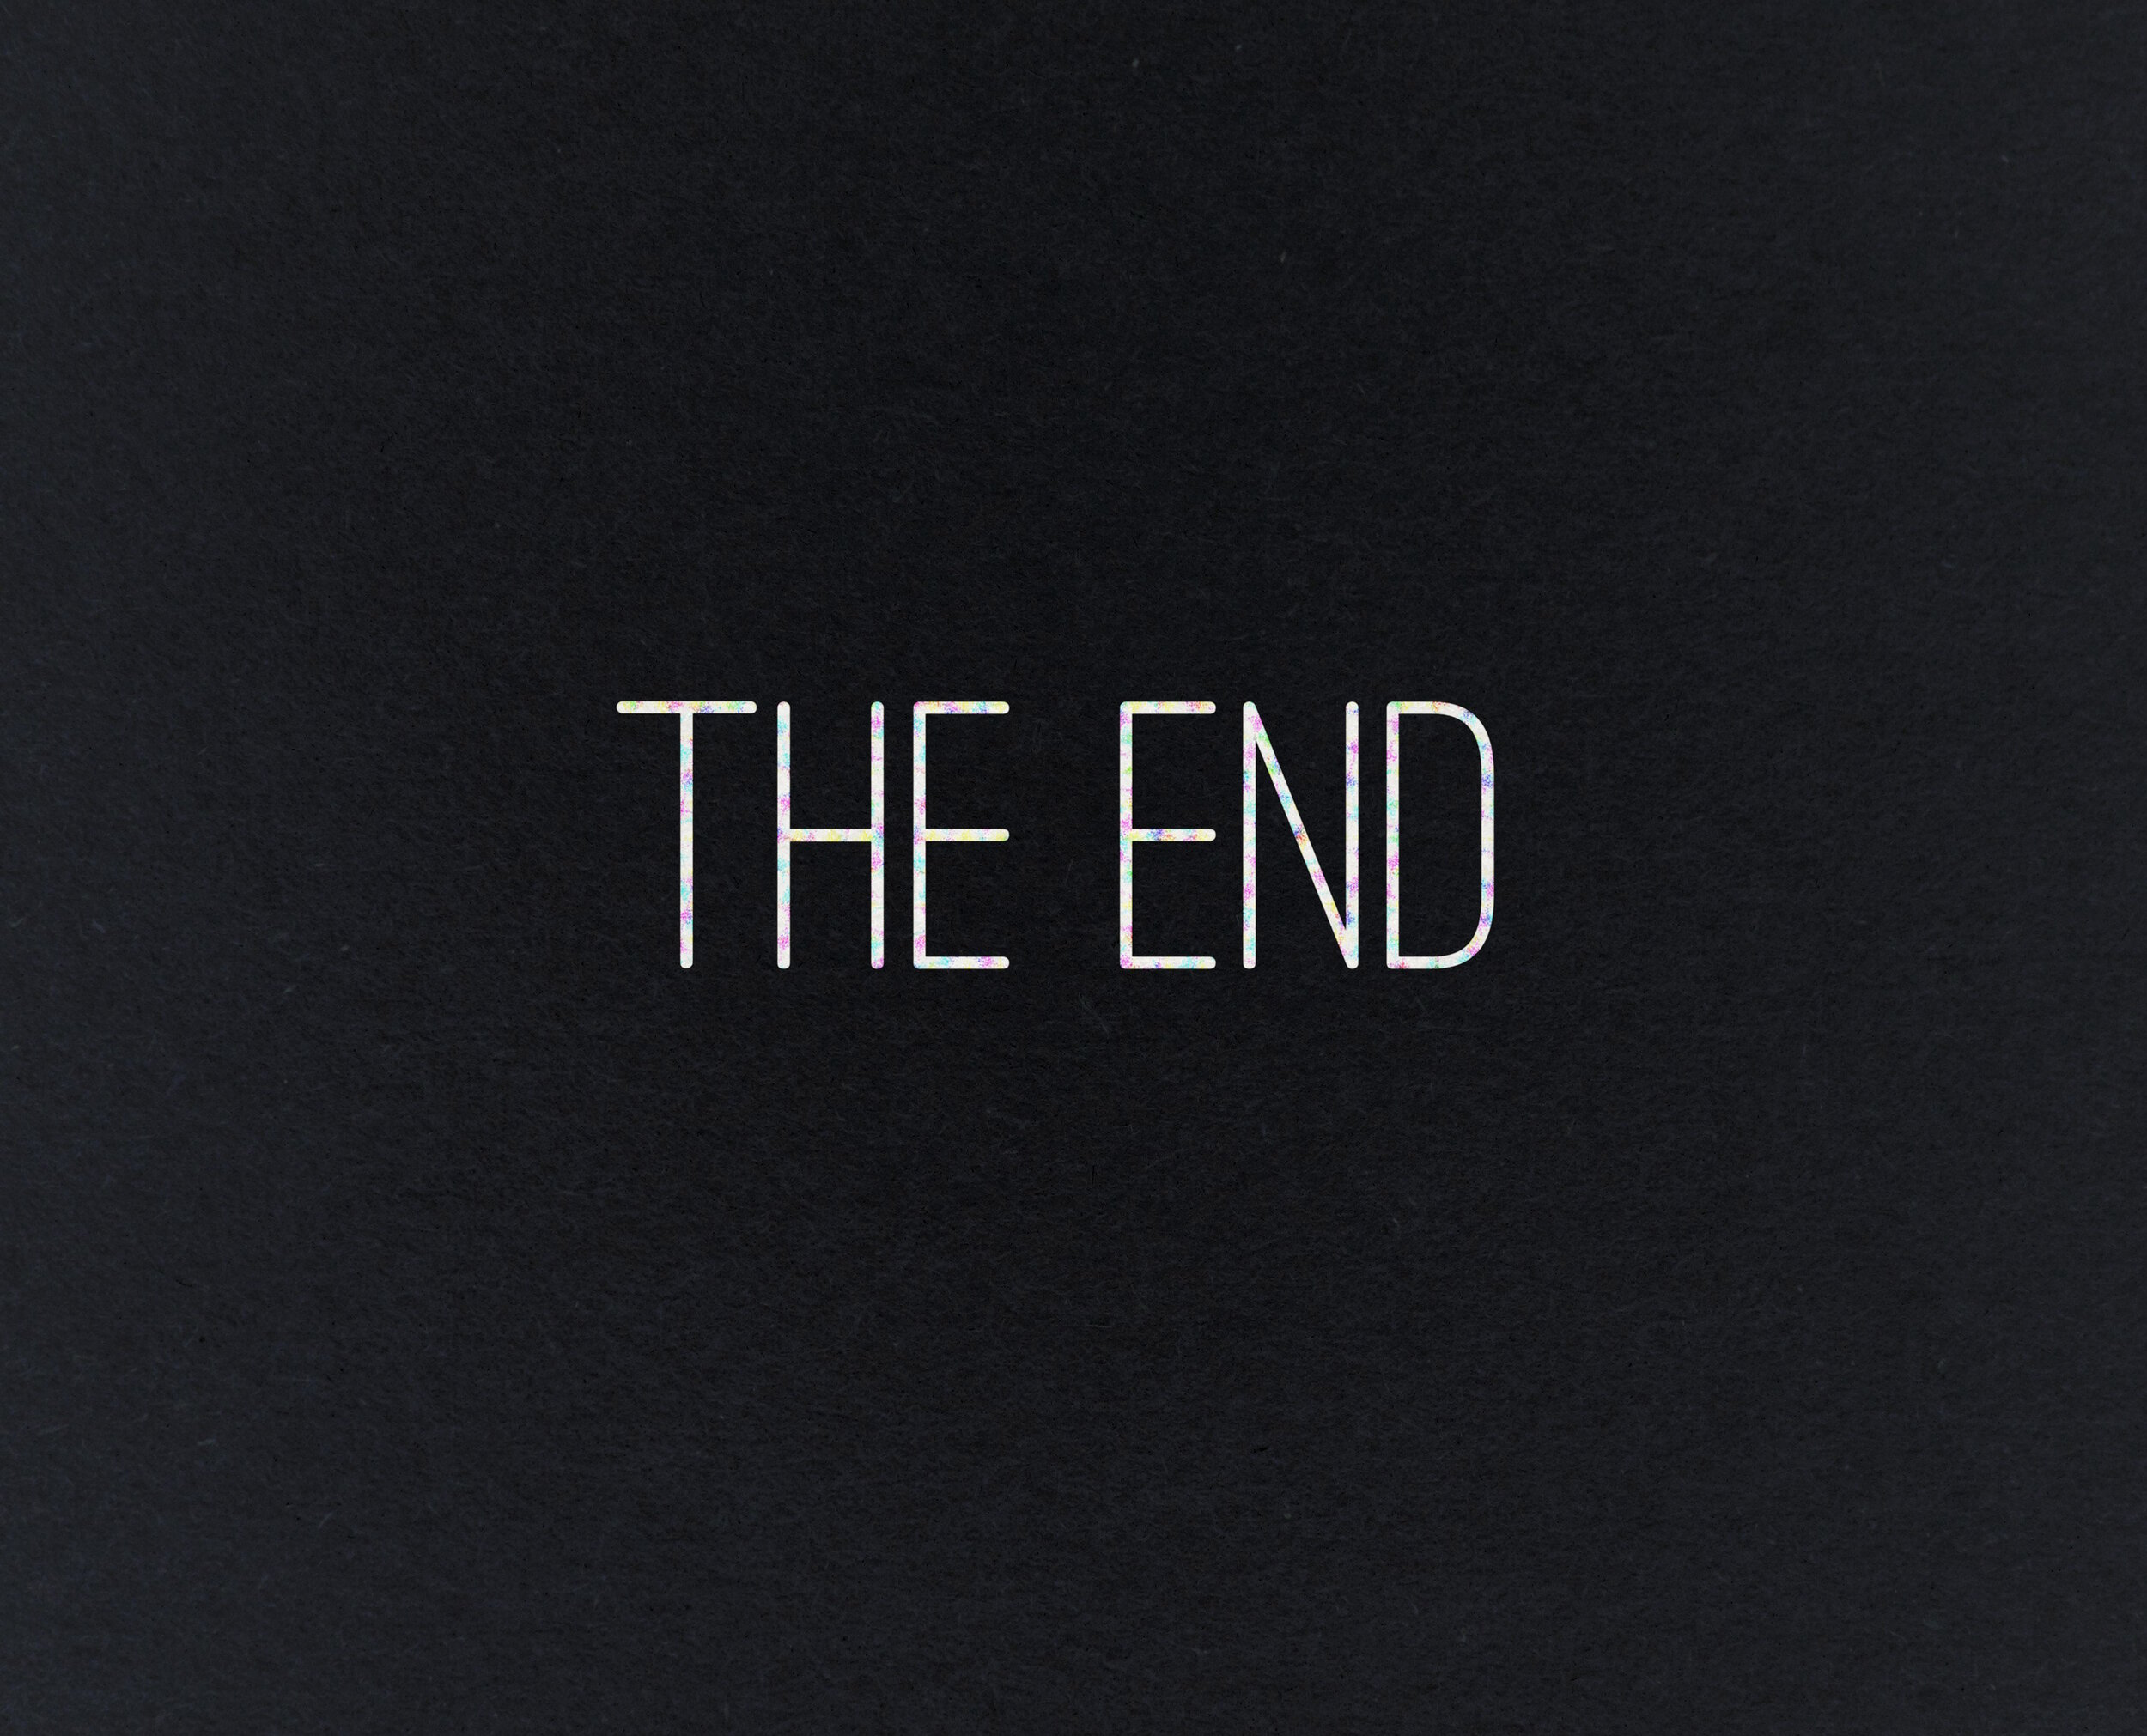 Episode 6: the End